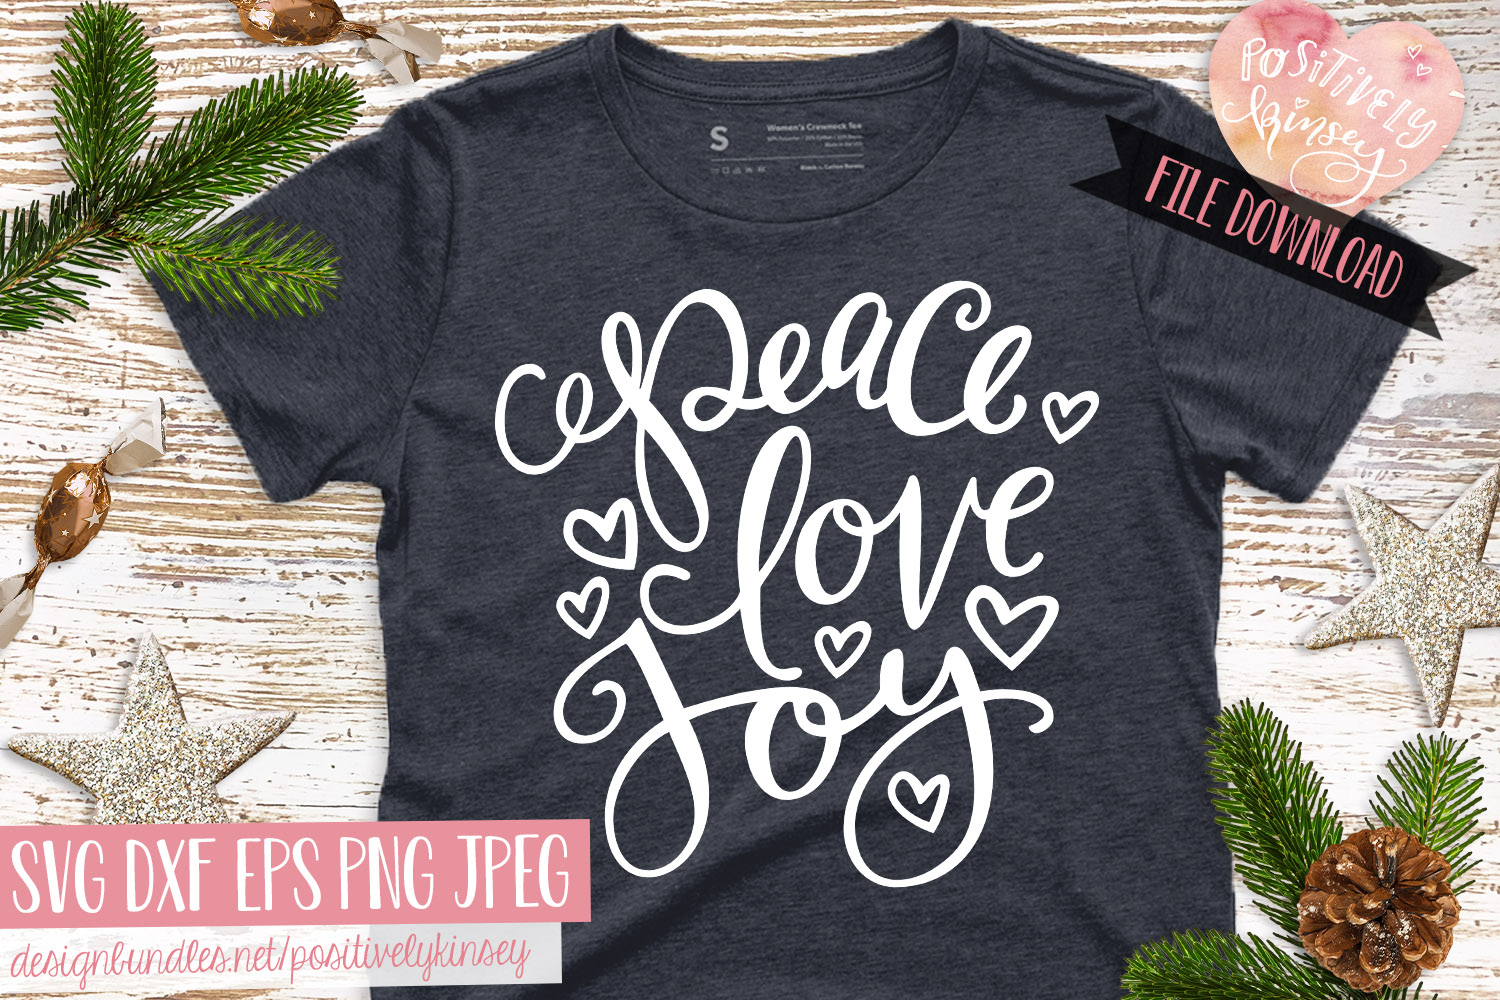 Christmas Quote SVG DXF PNG EPS Peace Love Joy SVG Design example image 2